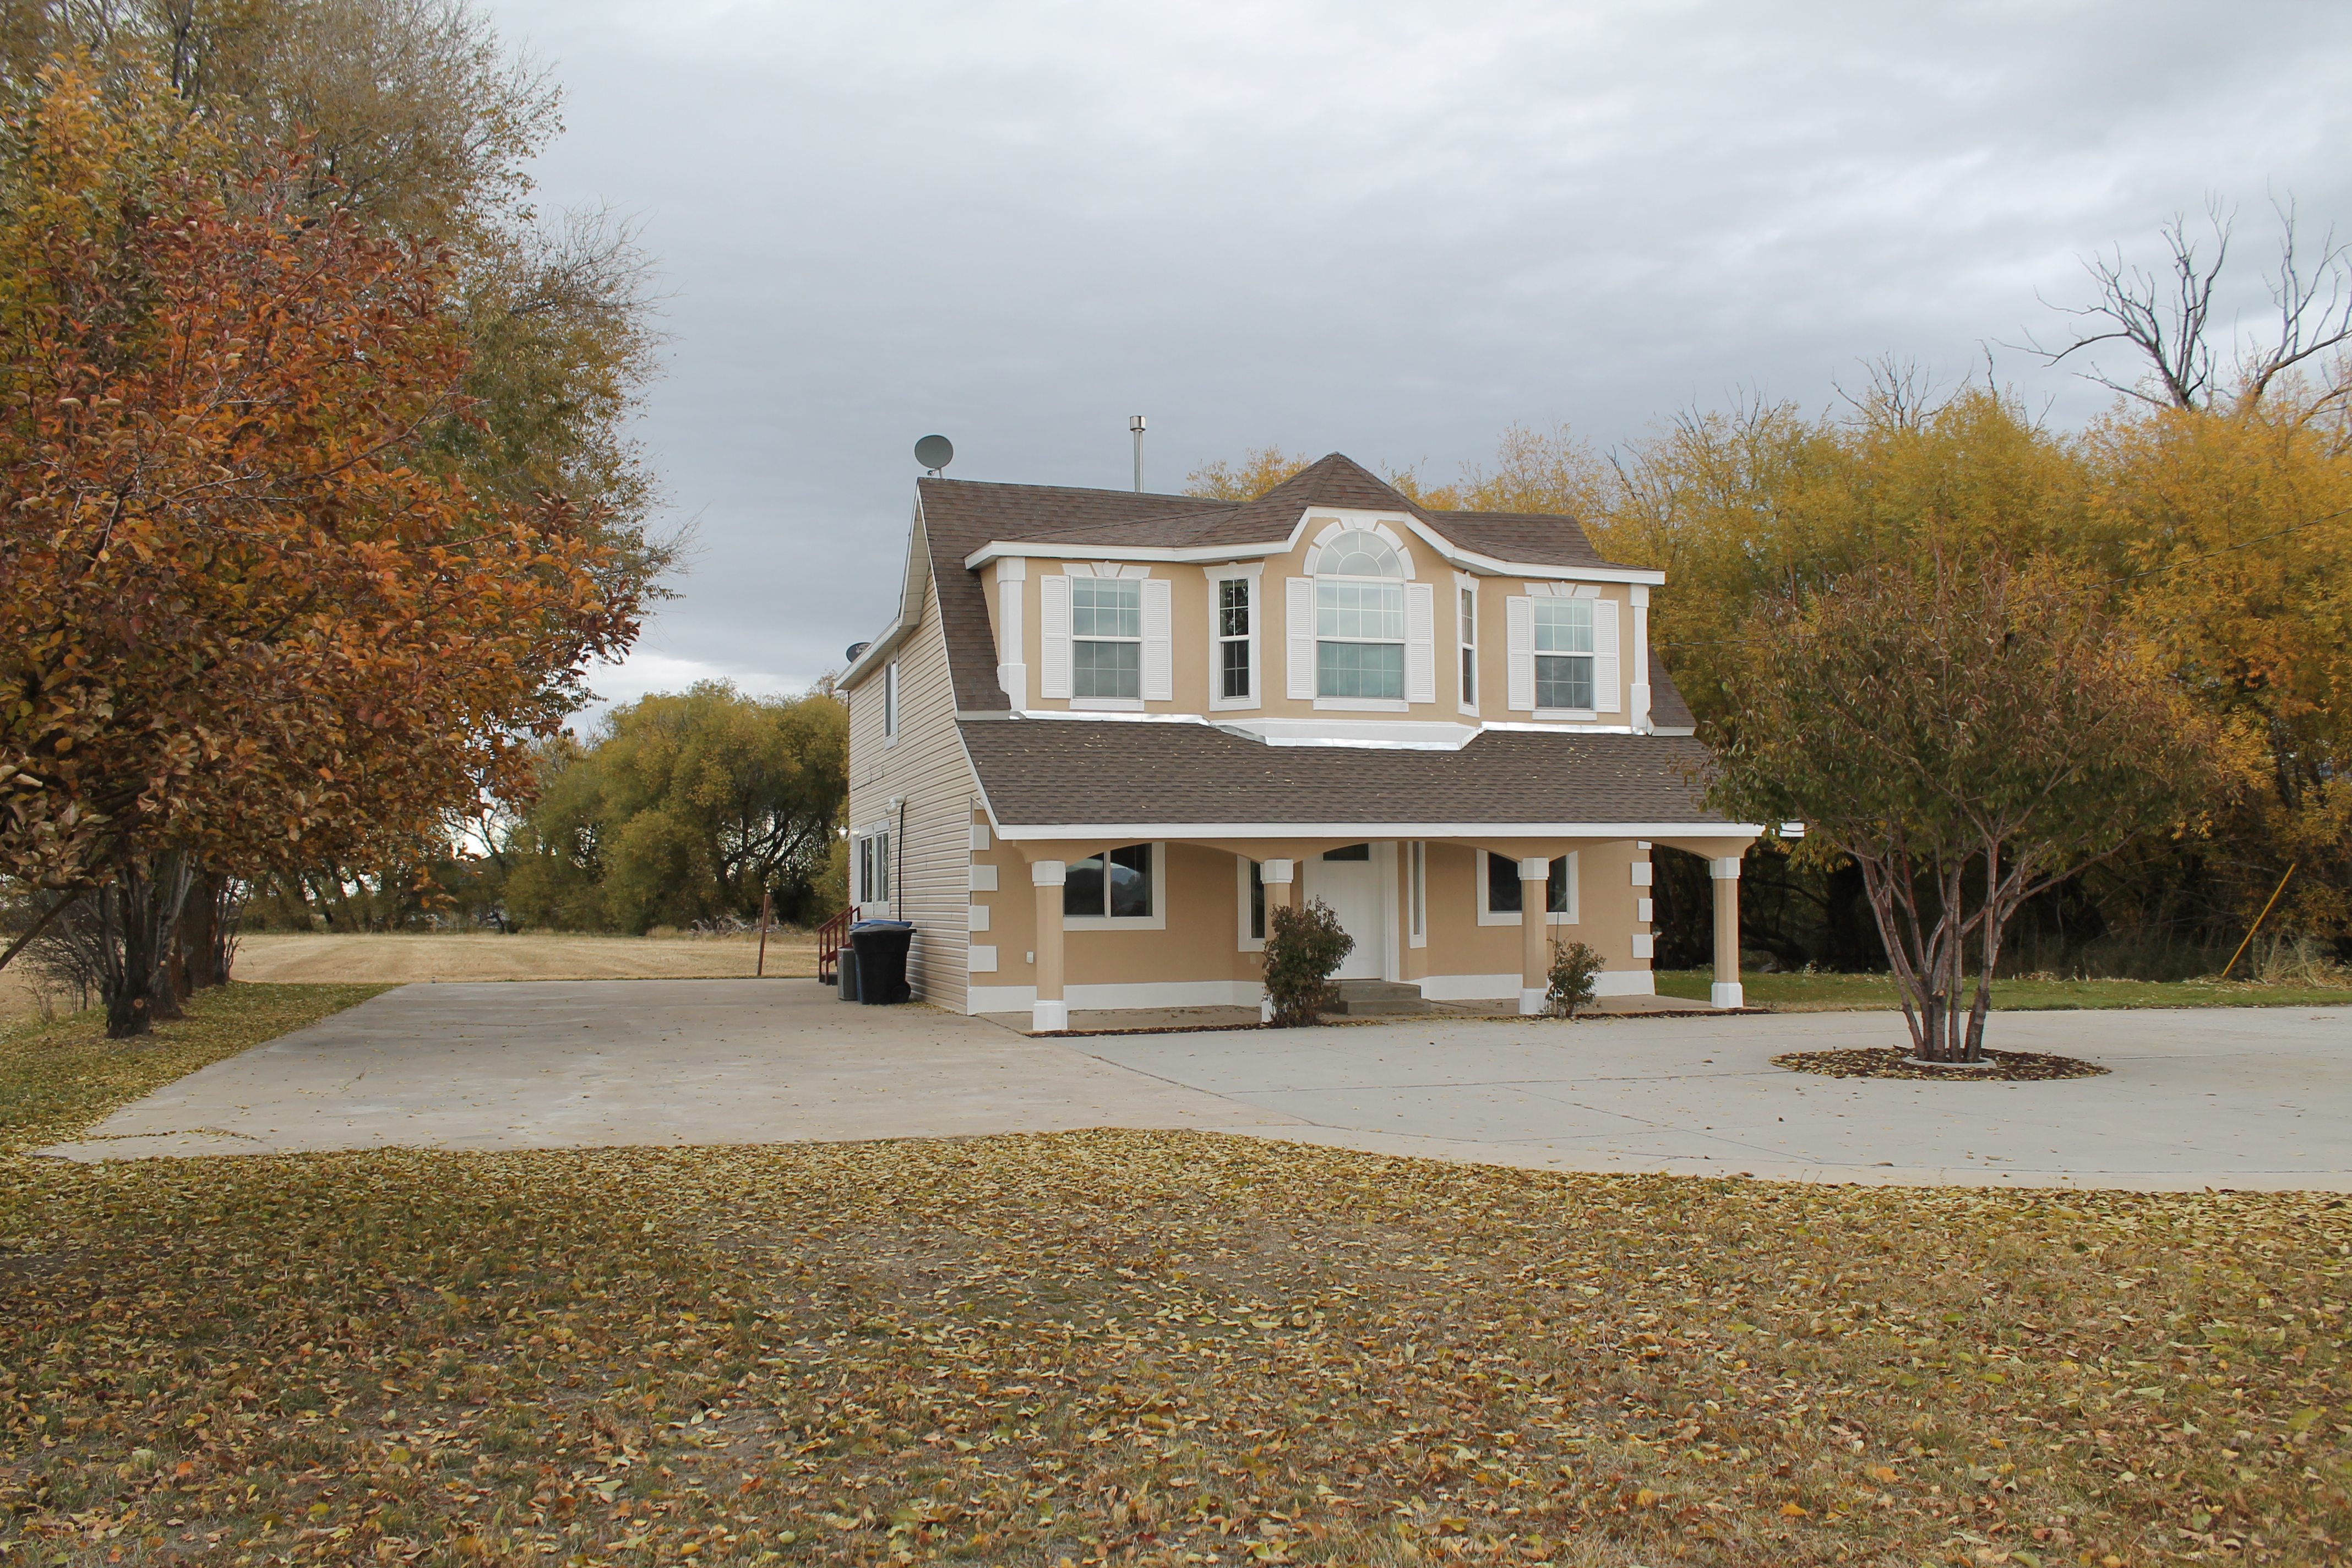 Wellsville 6 Bedrooms, 3 Baths, 2 Kitchens Updated House!